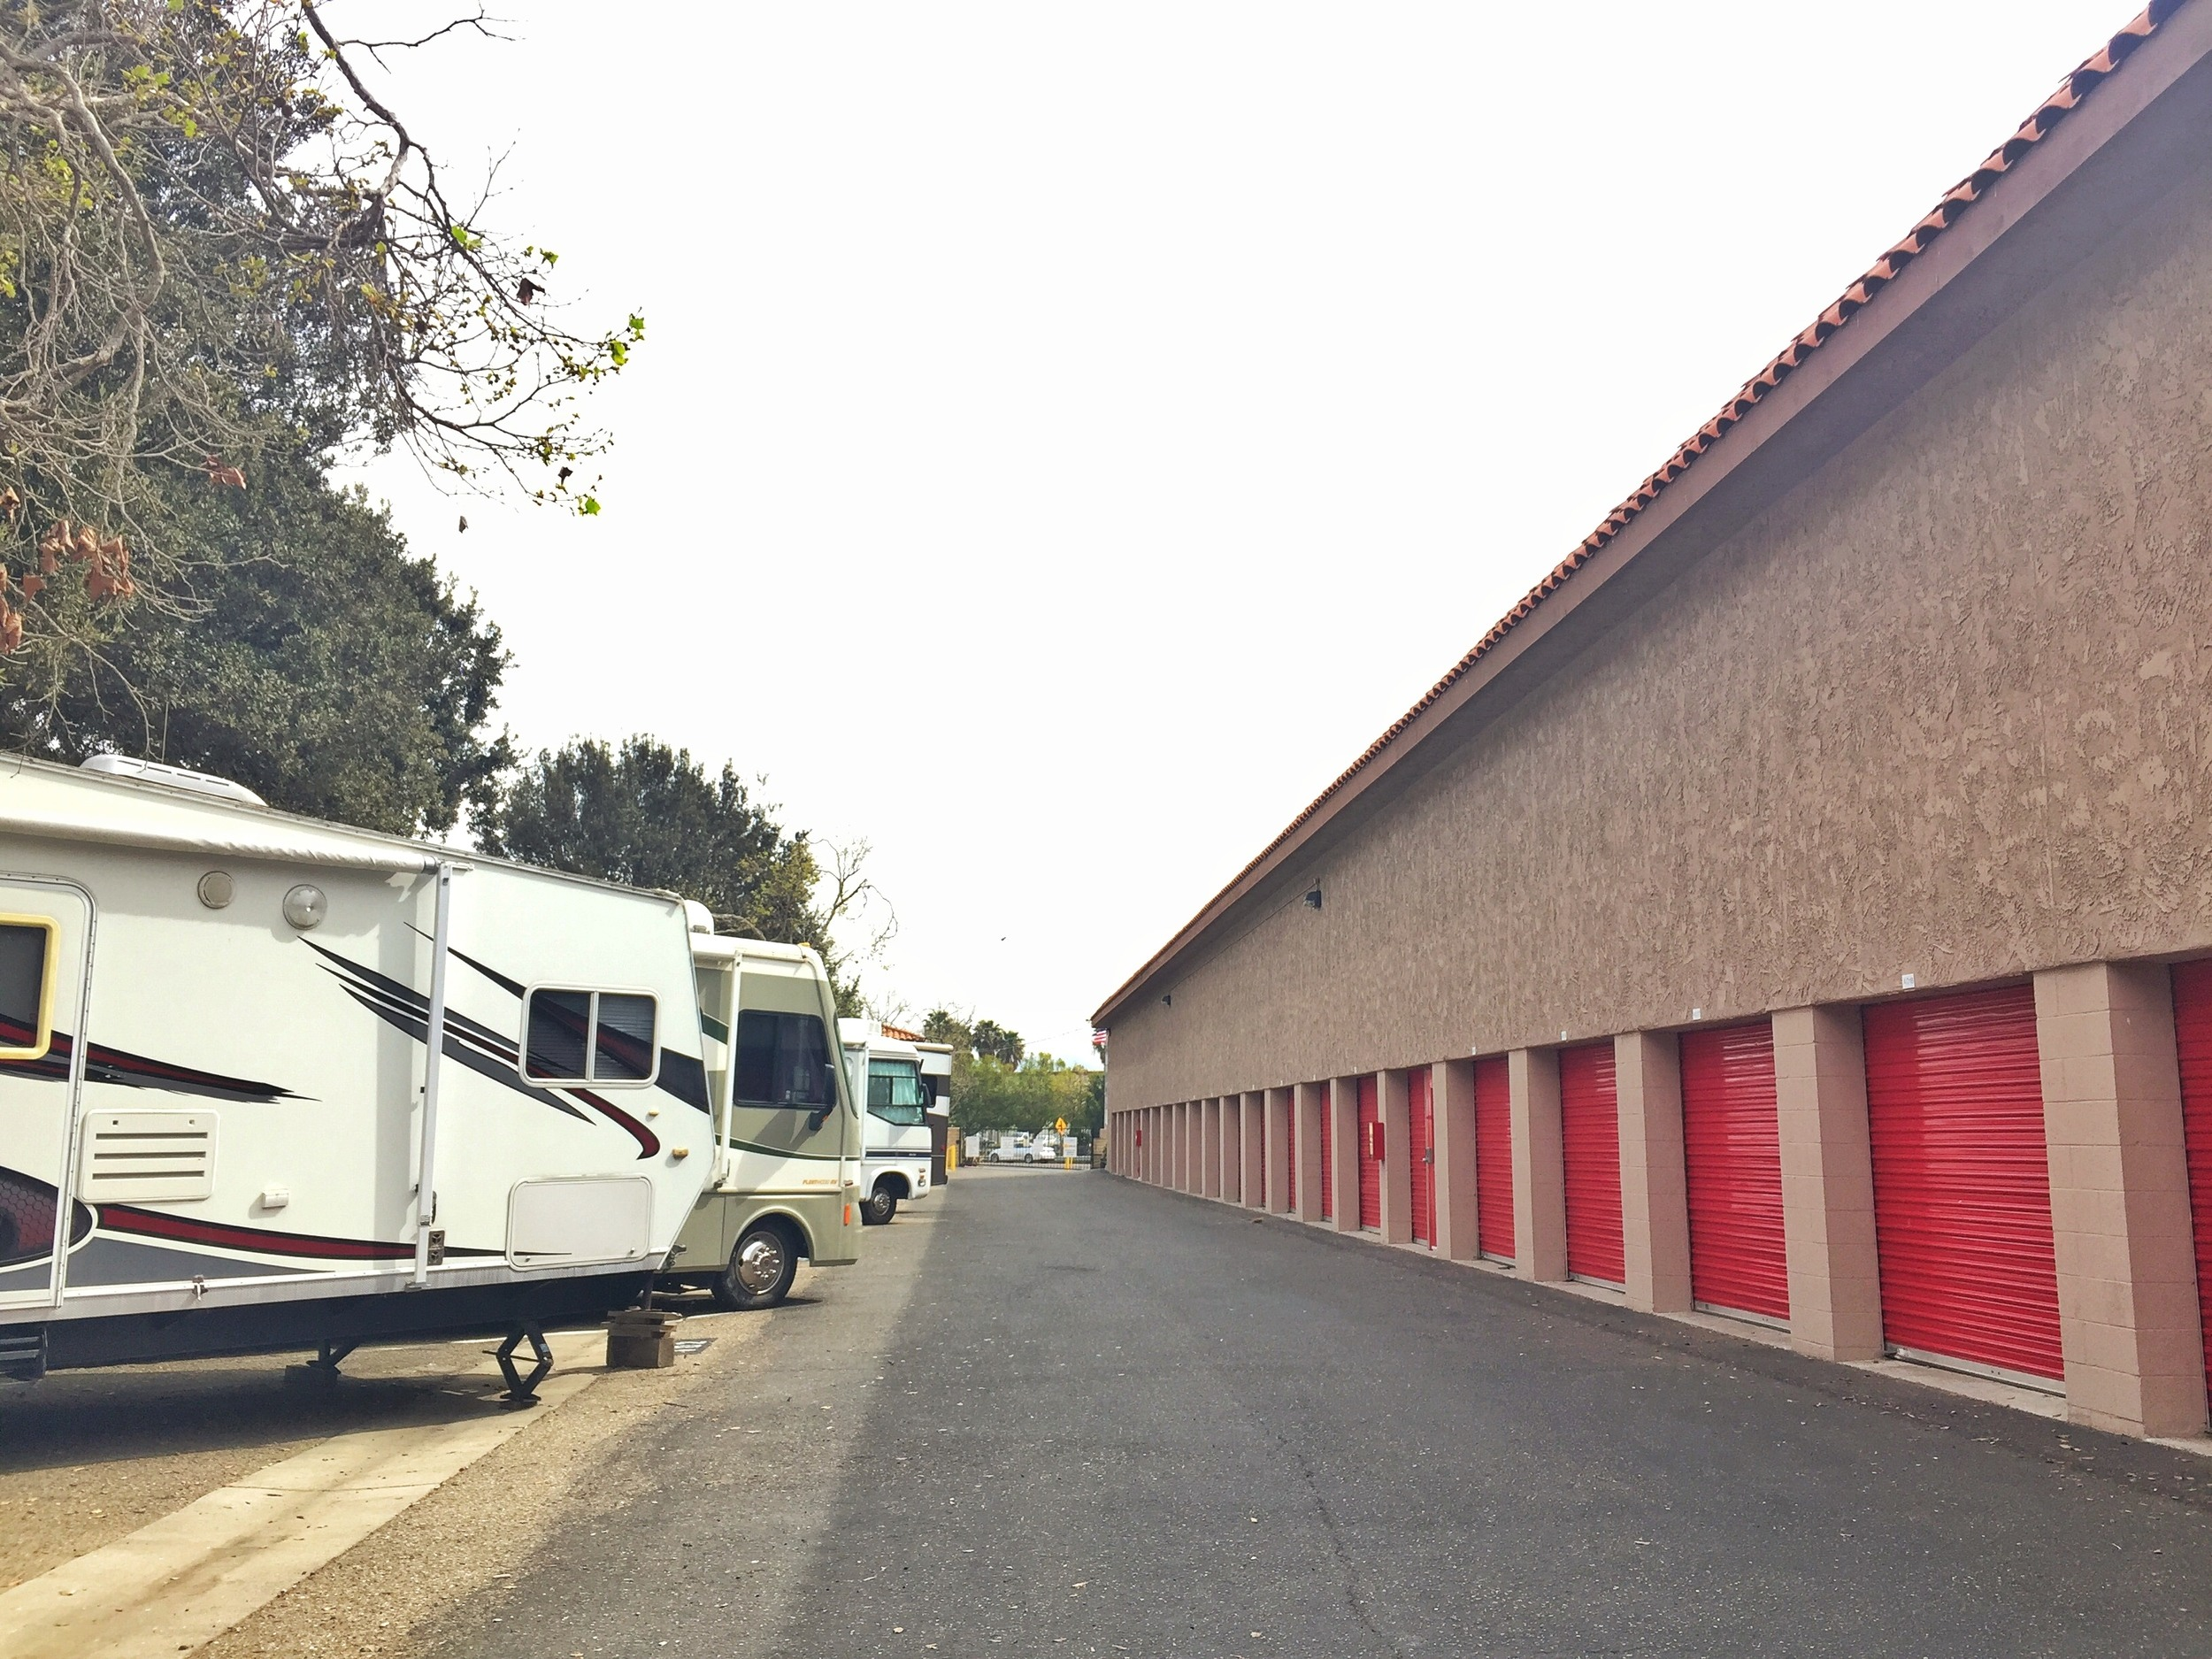 Exterior self storage units in Camarillo with drive up access